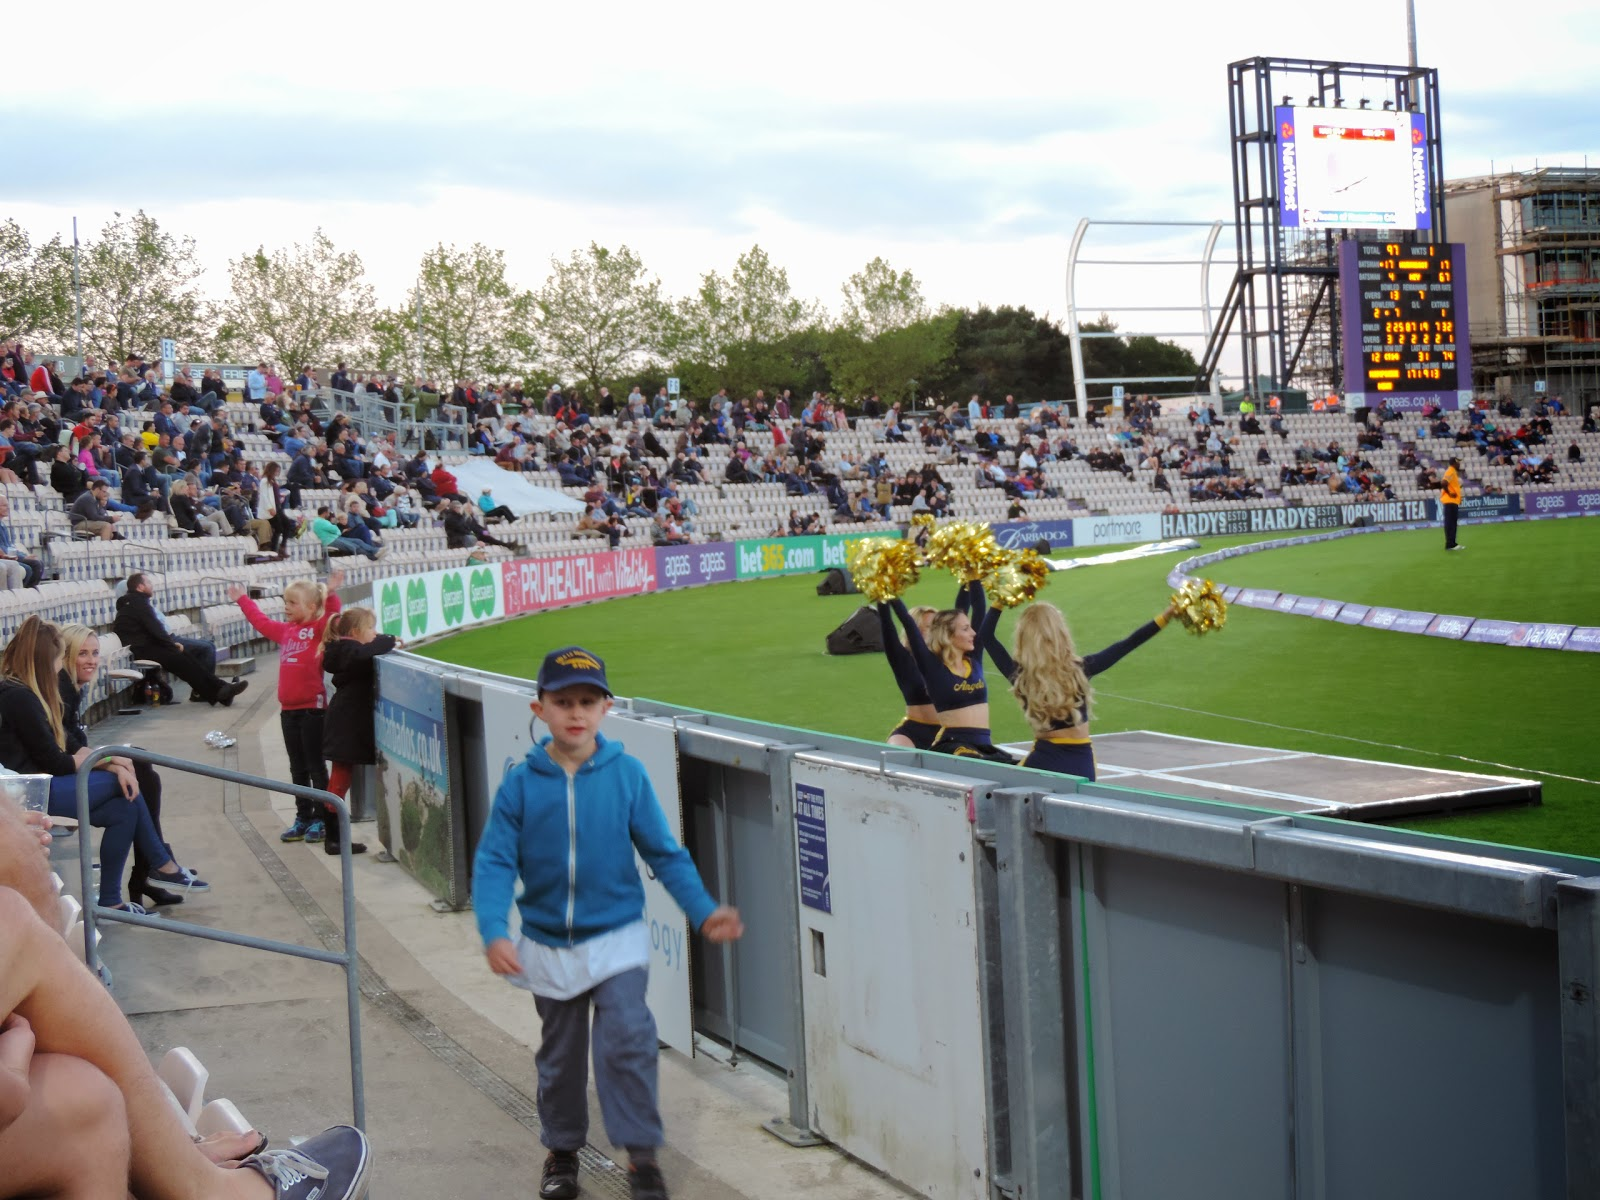 pom pom cheerleader dancing girls at natwest blast t20 cricket match